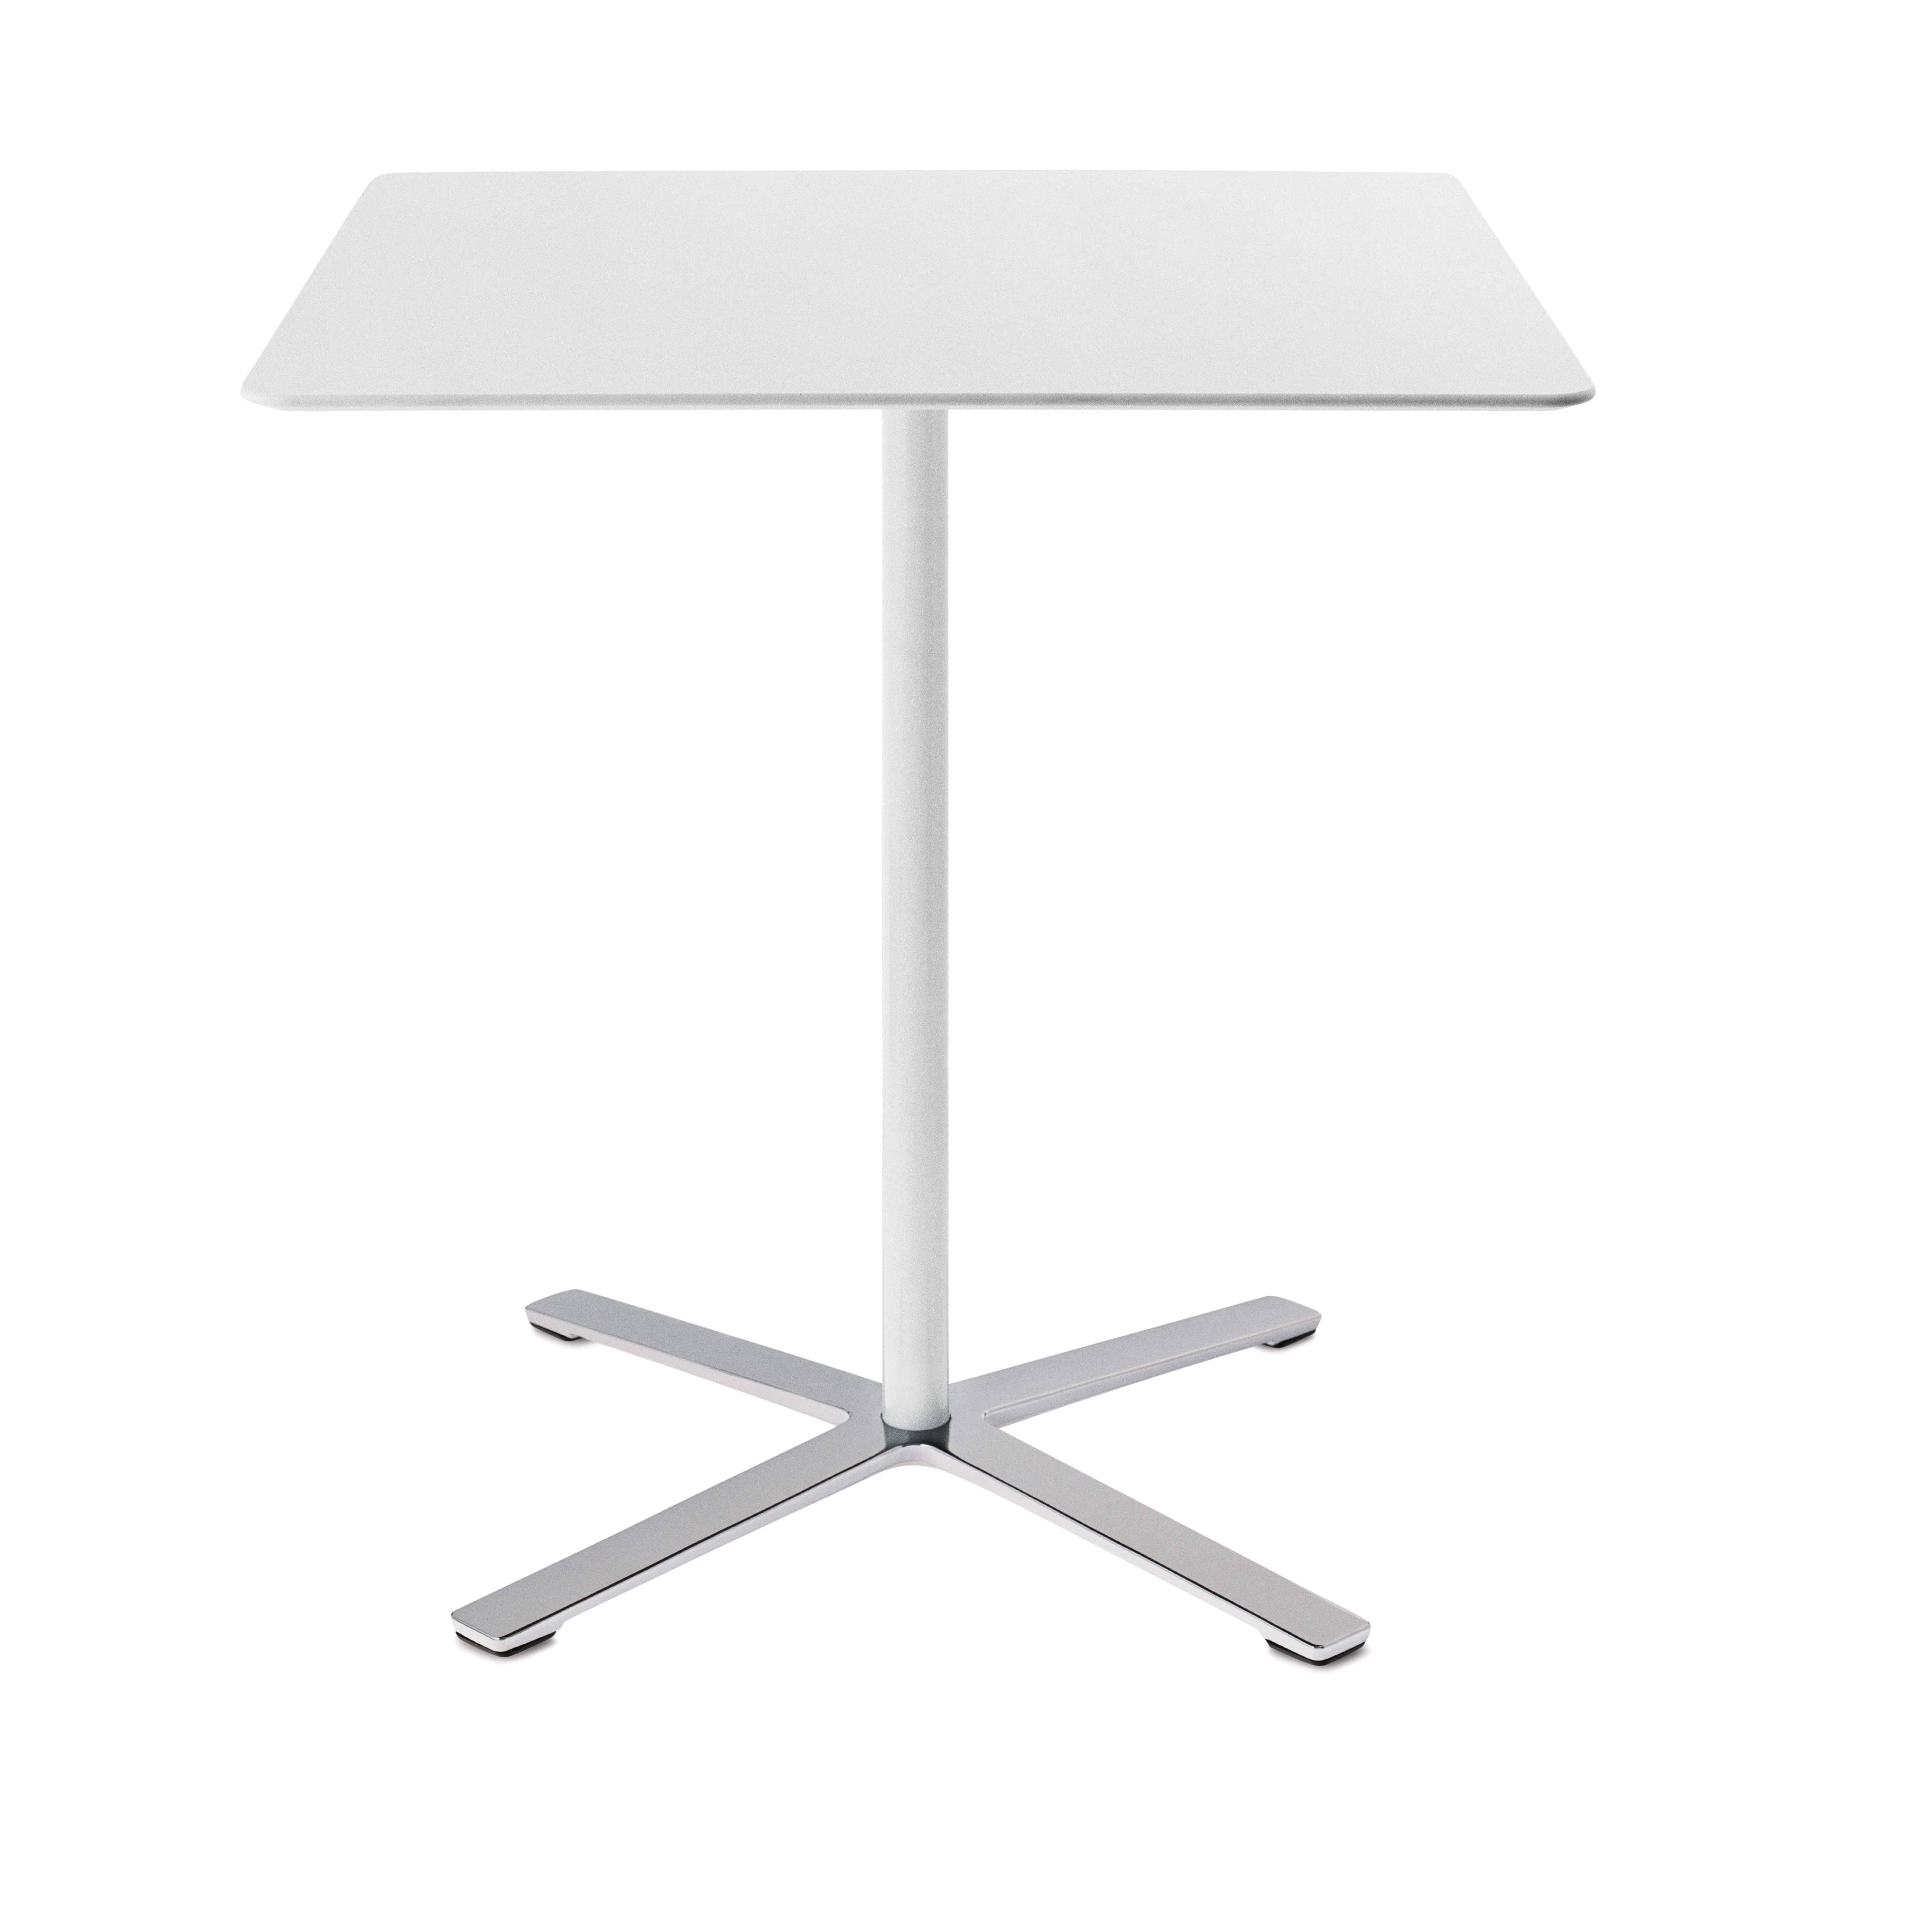 Aline Table Round Tables Side Table Range 230 Meeting Table